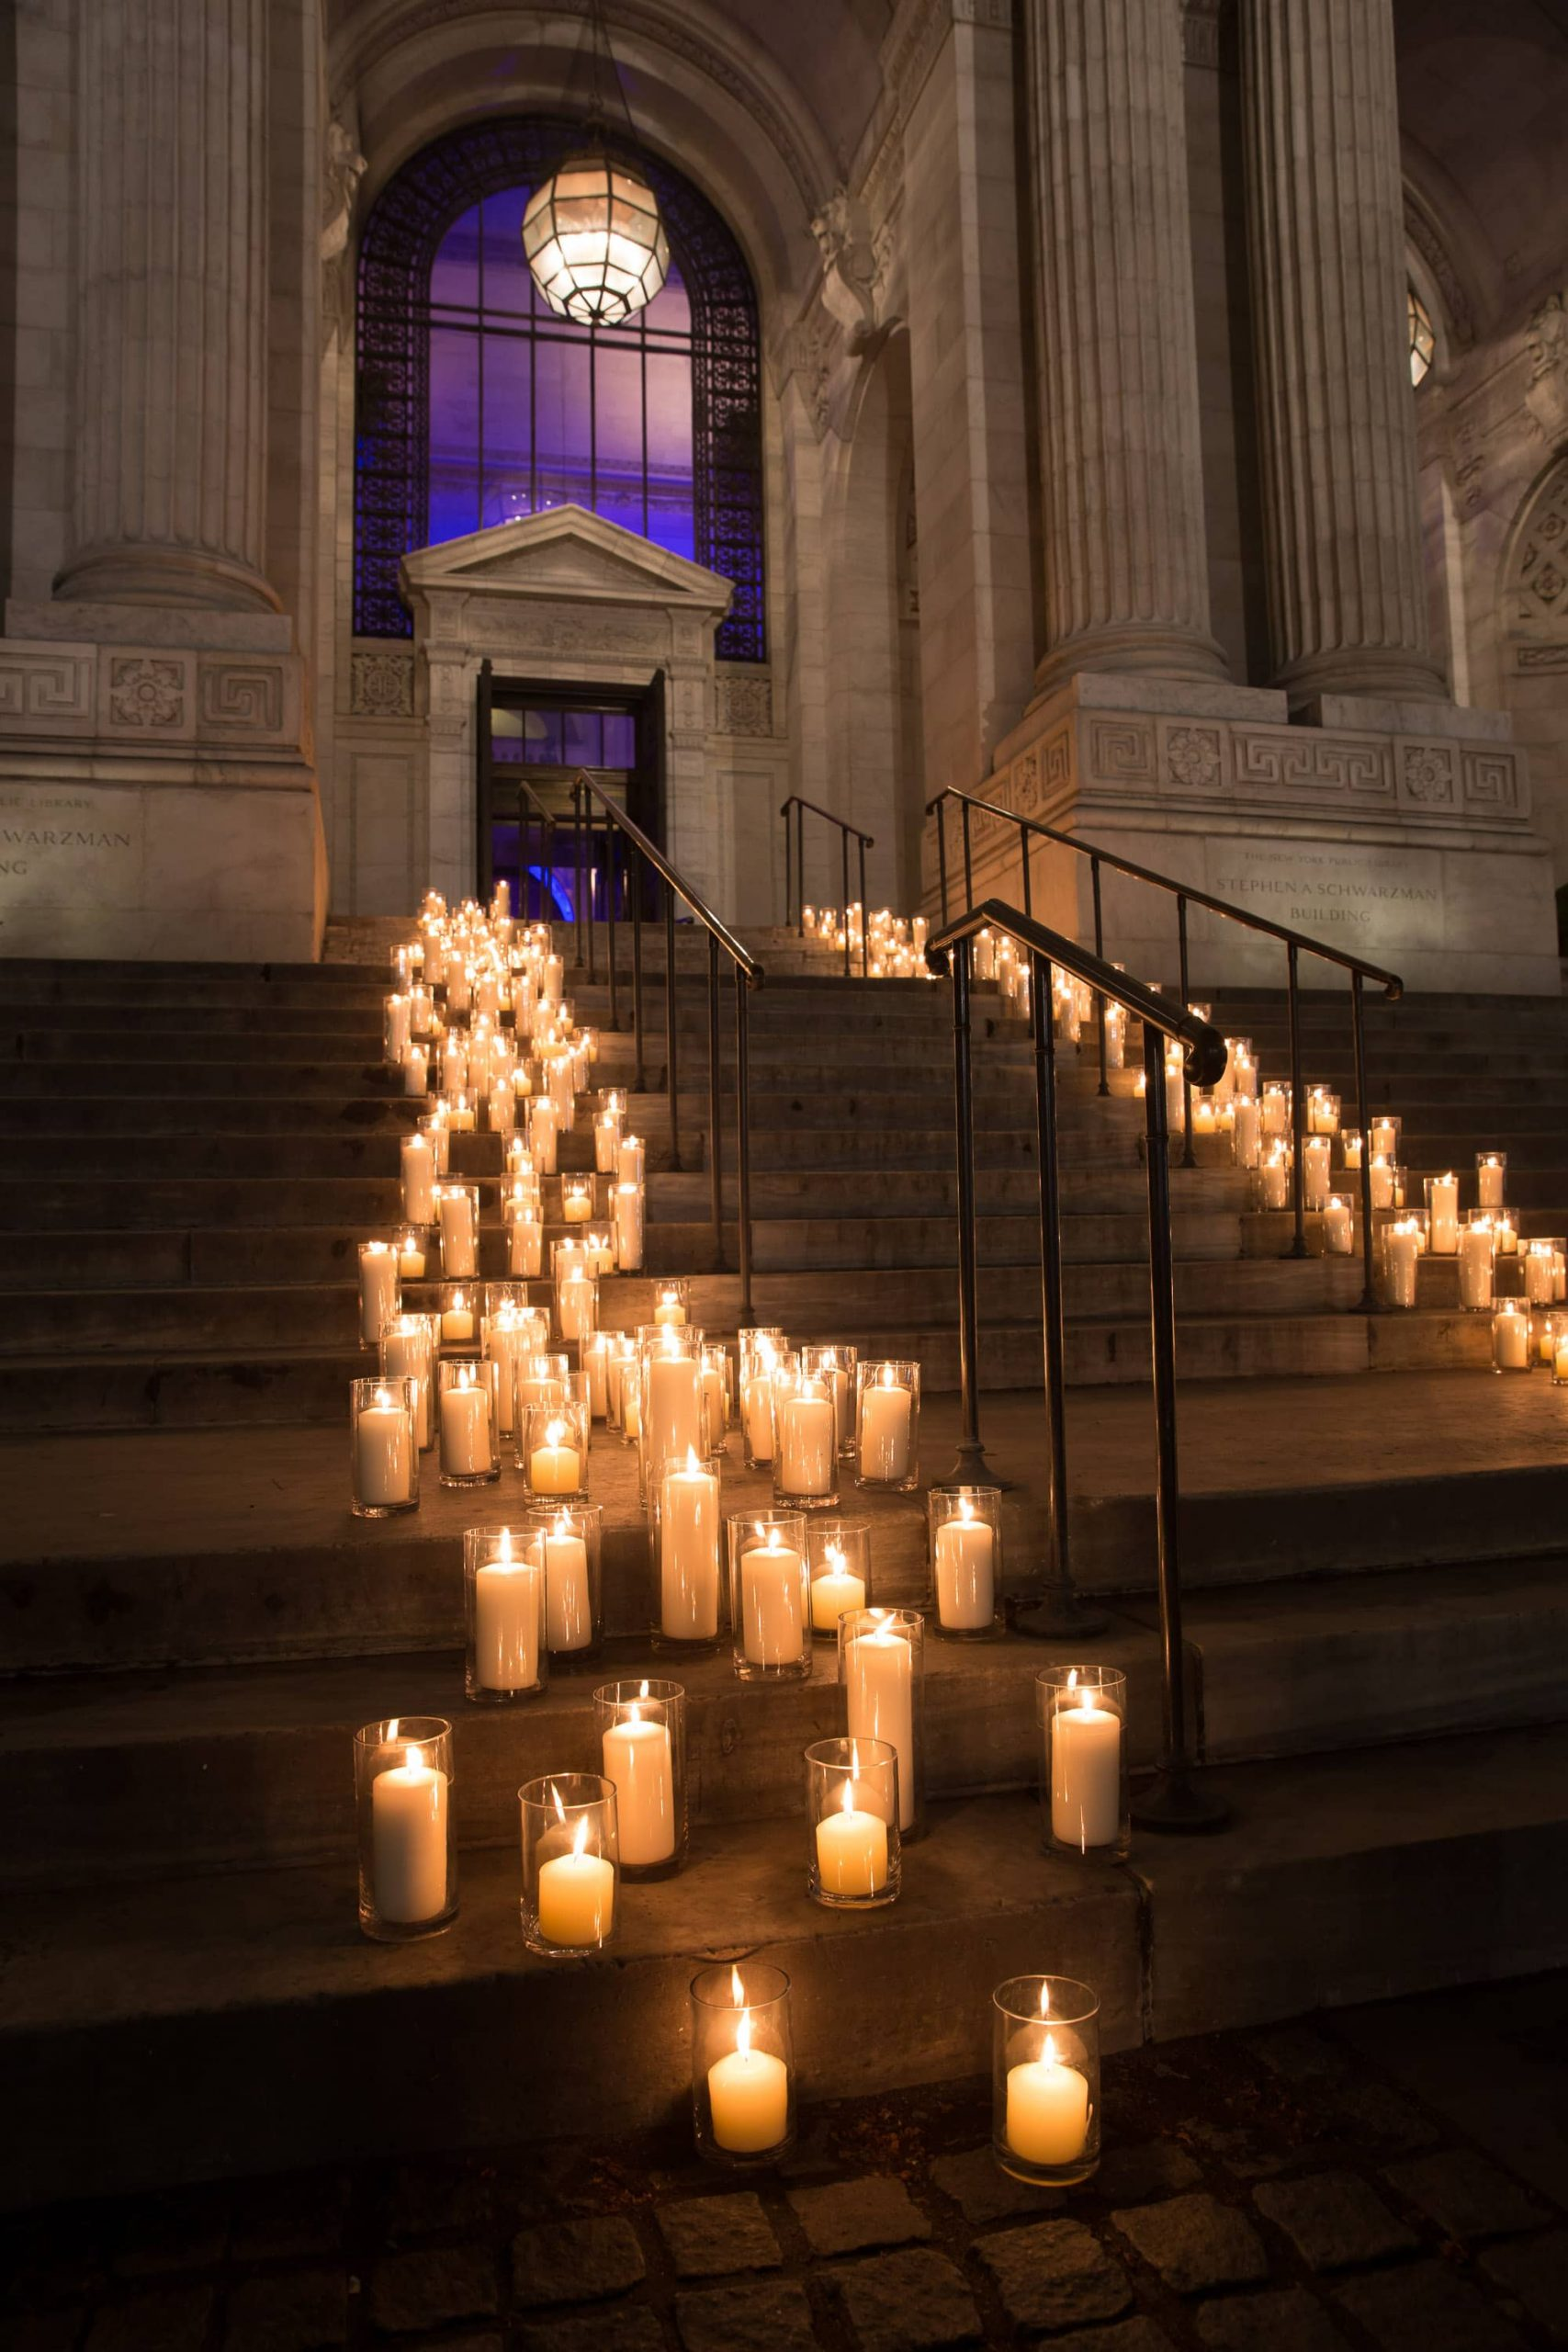 Candle-strewn stairway at this New York Public Library wedding | Photo by Genevieve de Manio